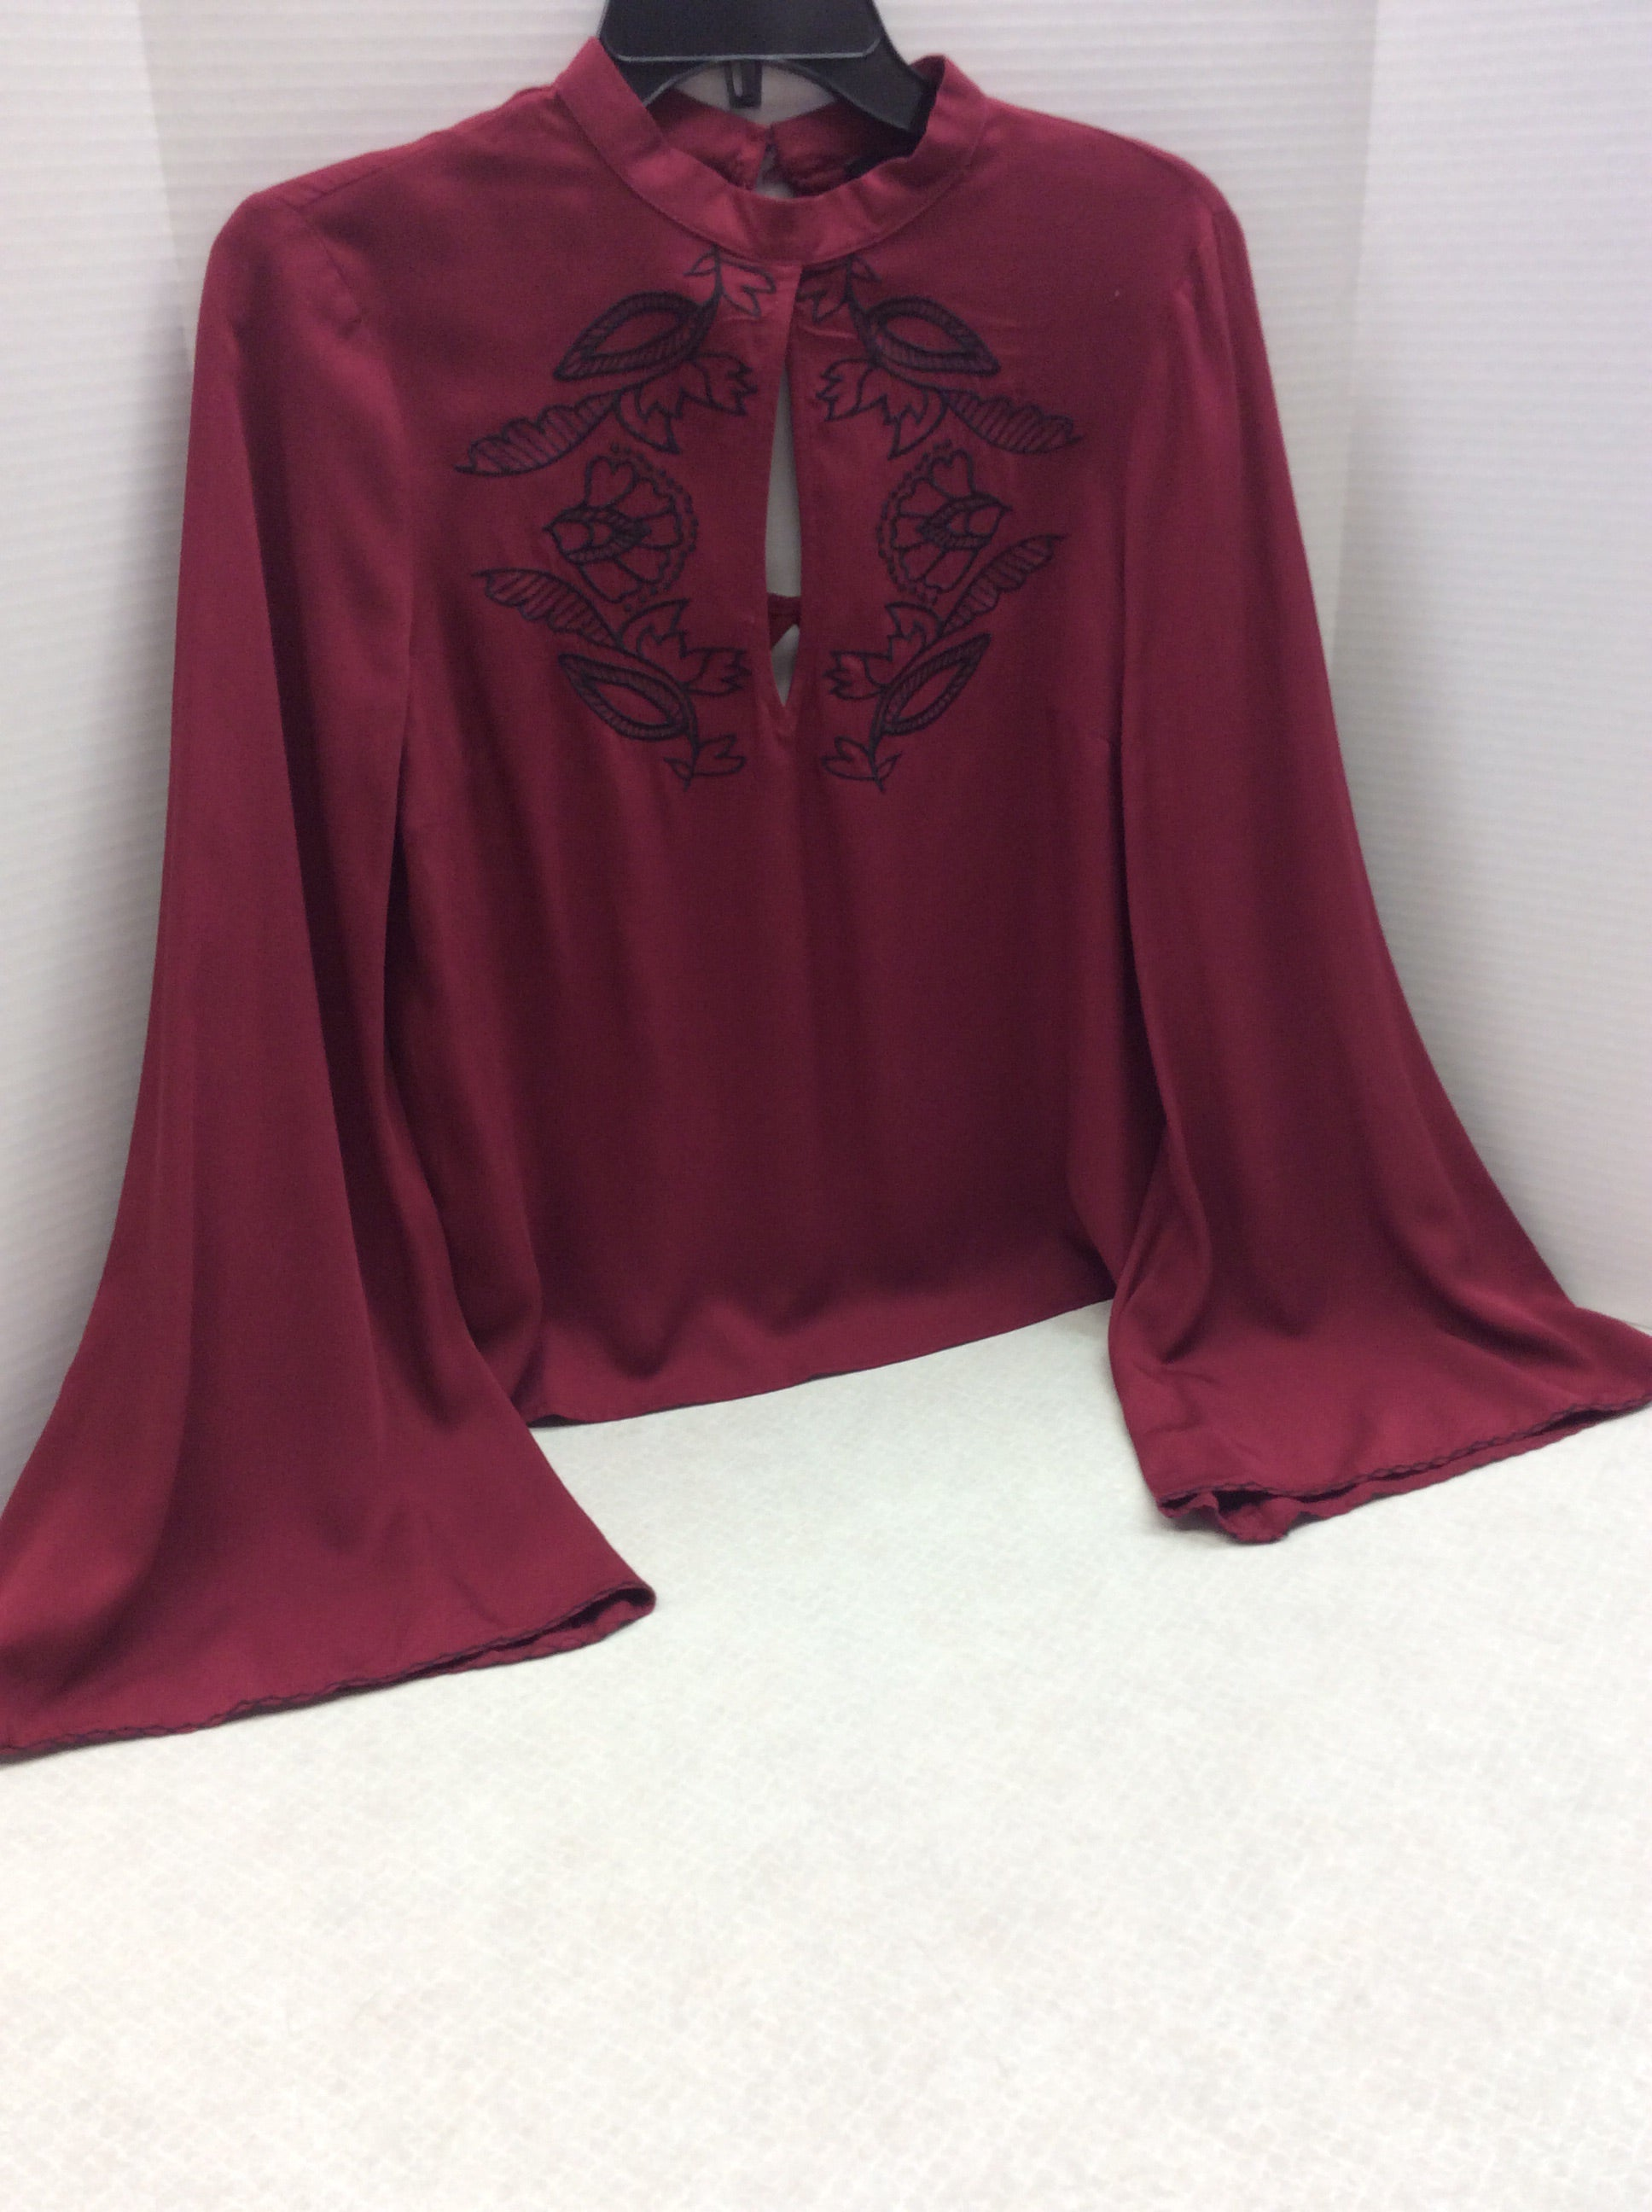 Primary Photo - BRAND: MINKPINK <BR>STYLE: TOP LONG SLEEVE <BR>COLOR: BRICK RED <BR>SIZE: XS <BR>SKU: 133-13316-110232SUCH PRETTY DETAILS ON THIS BELL SLEEVE BLOUSE WITH FLORAL MOTIF EMBROIDERY!